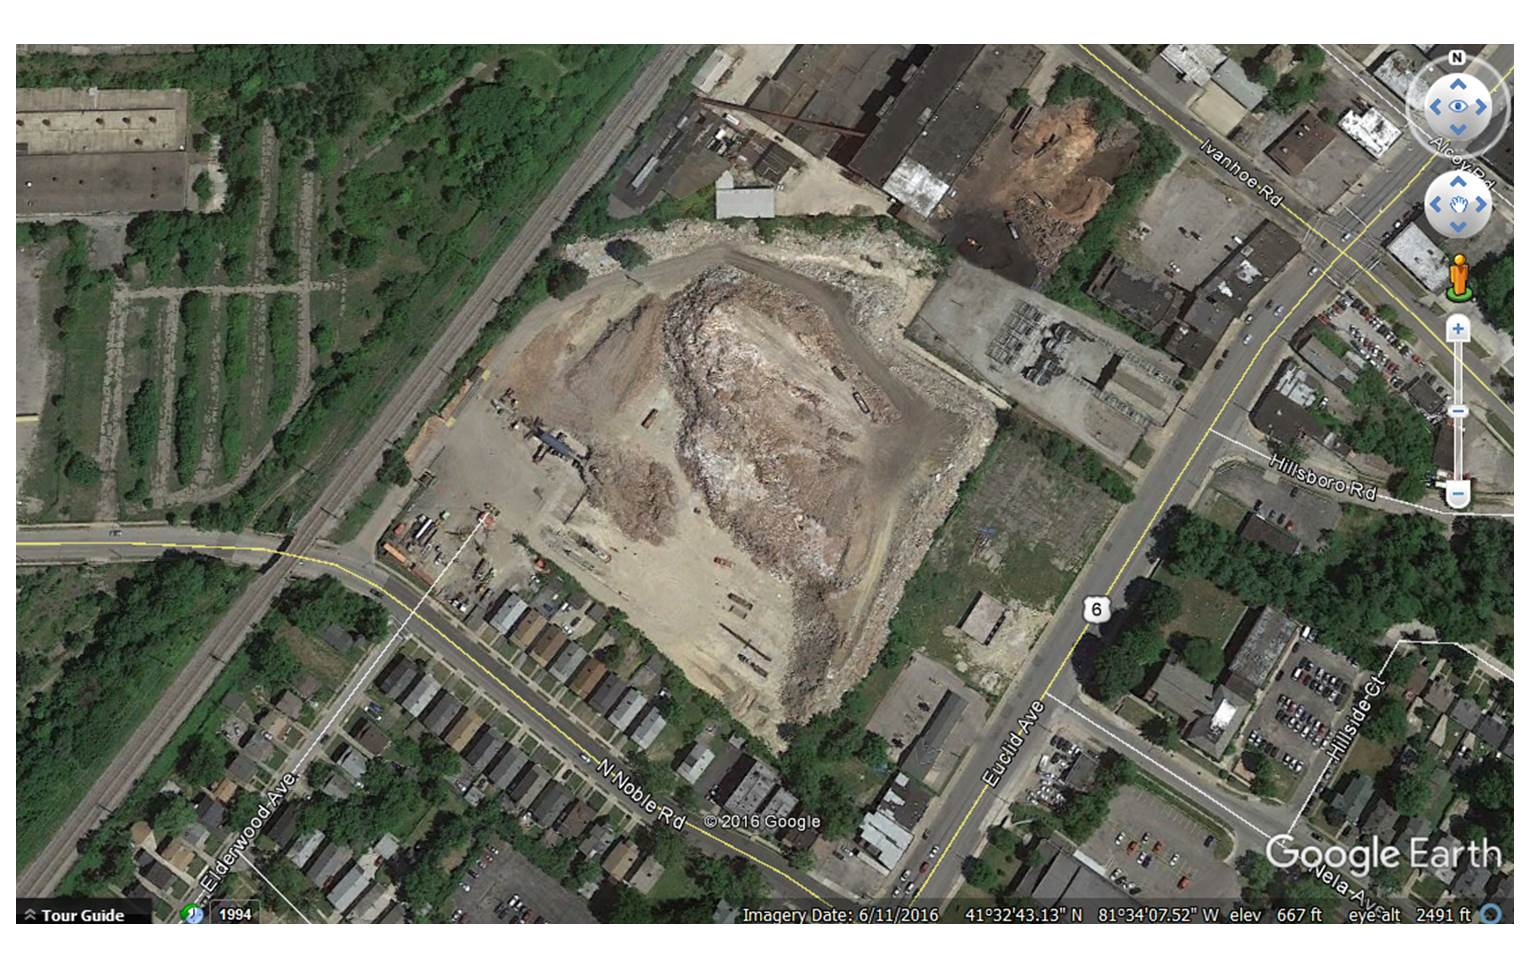 Google Earth view of 1705 Noble Road.